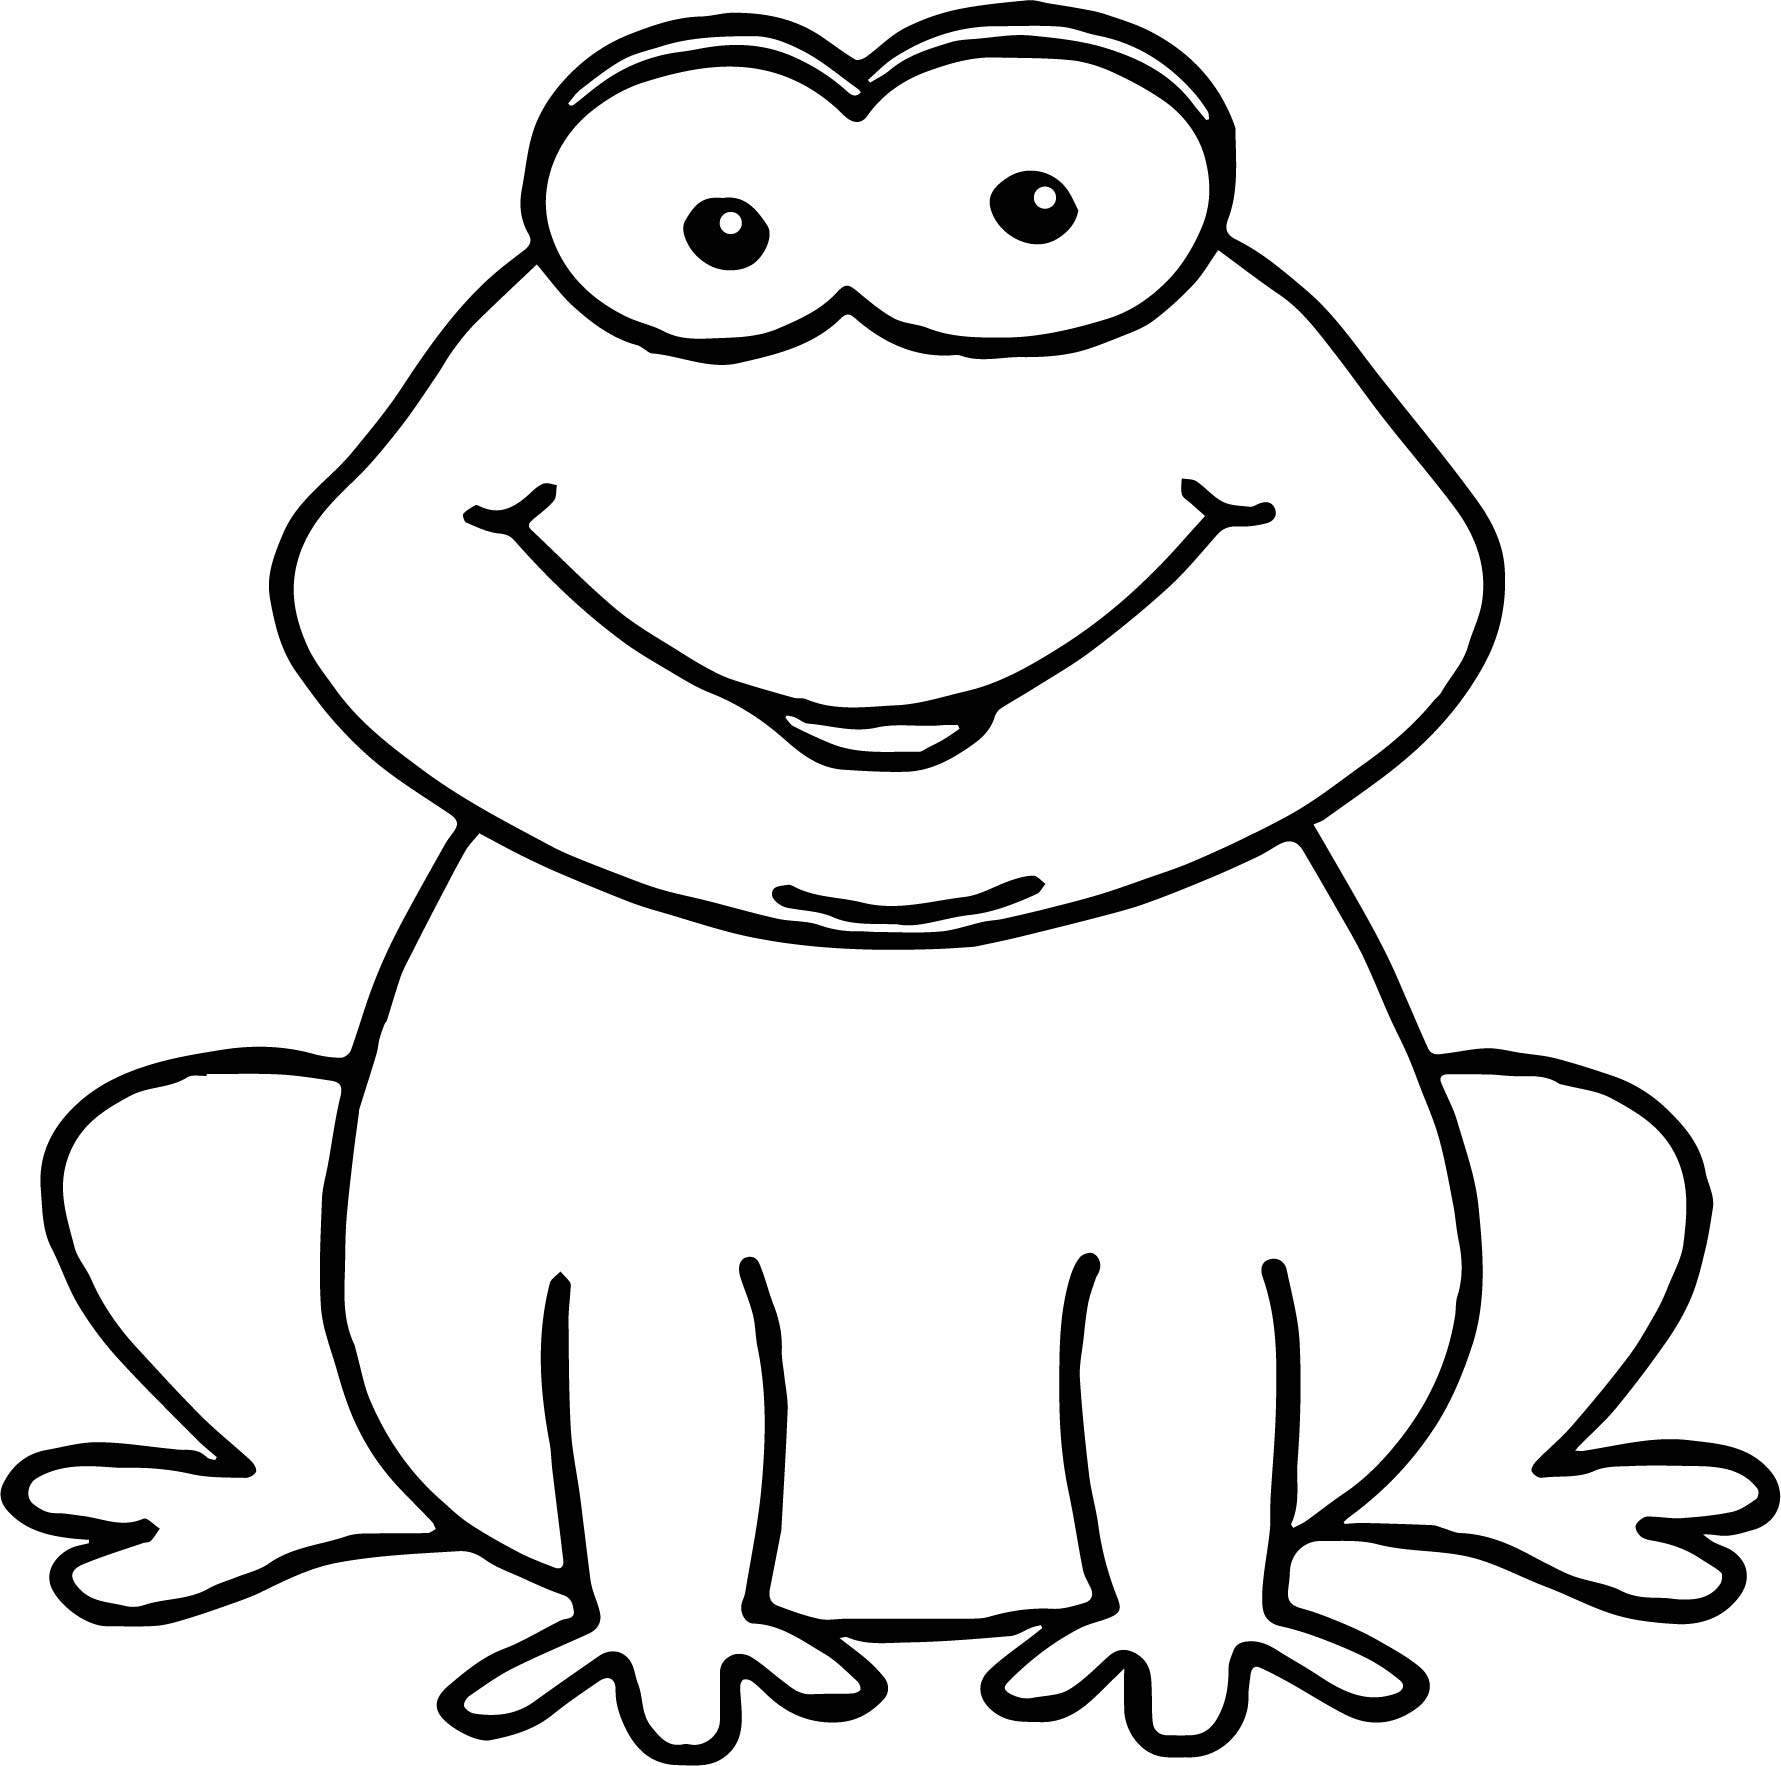 Exelent Realistic Frog Coloring Pages Frieze - Ways To Use Coloring ...